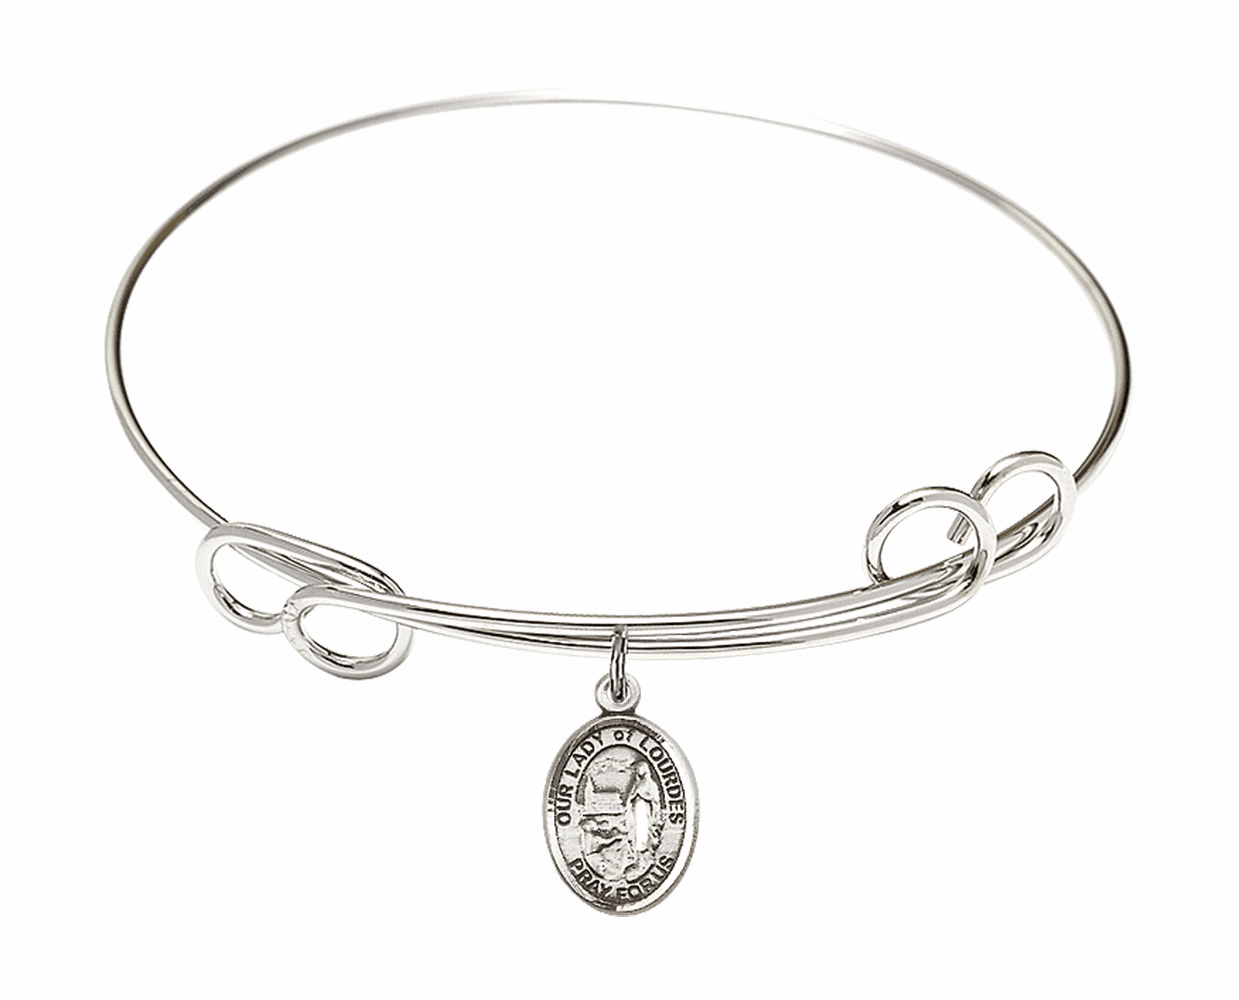 Round Loop Our Lady of Lourdes Bangle Charm Bracelet by Bliss